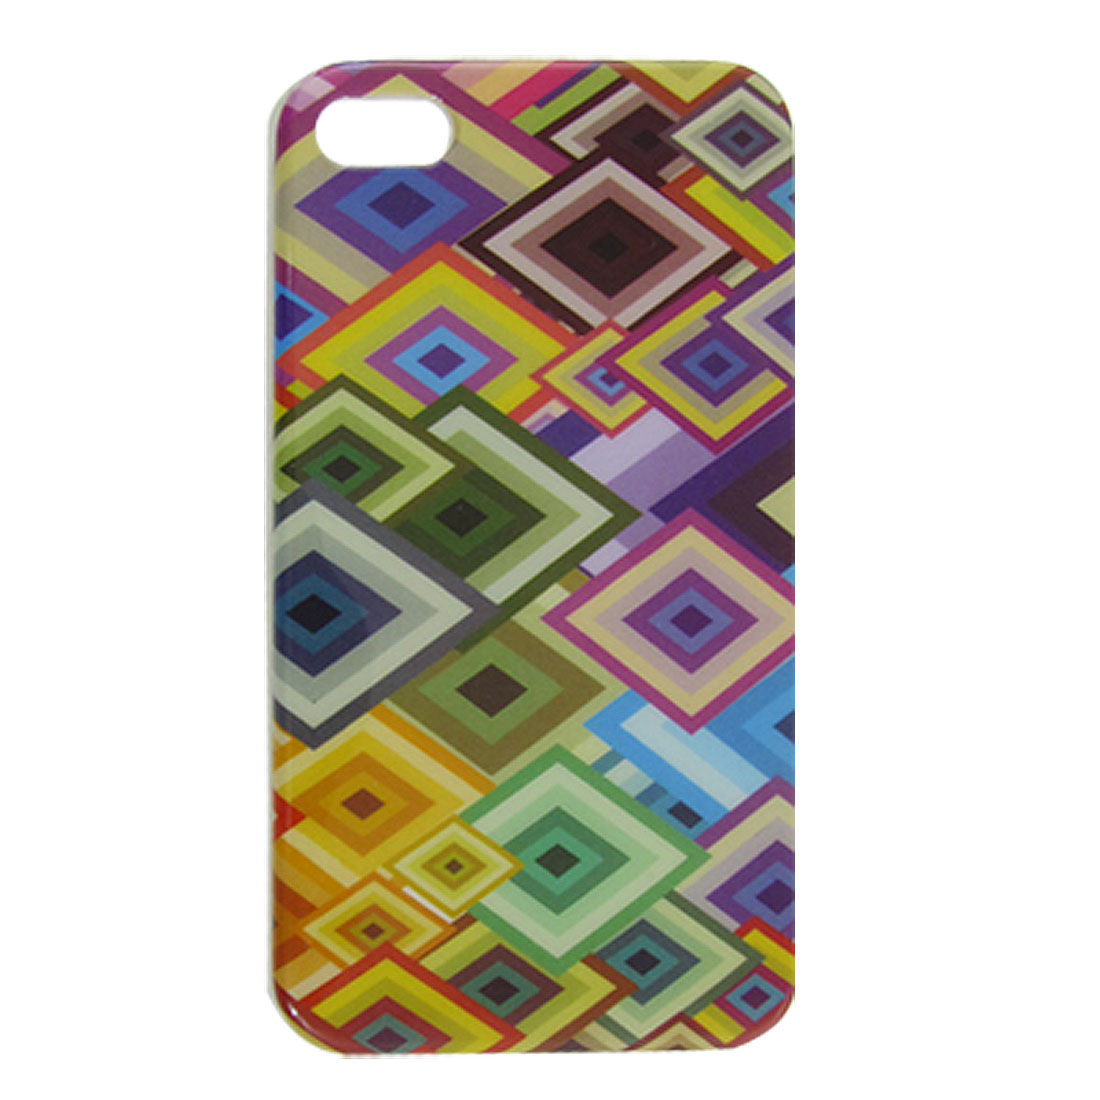 Colorful Argyle Pattern IMD Hard Back Case Cover for iPhone 4 4G 4S